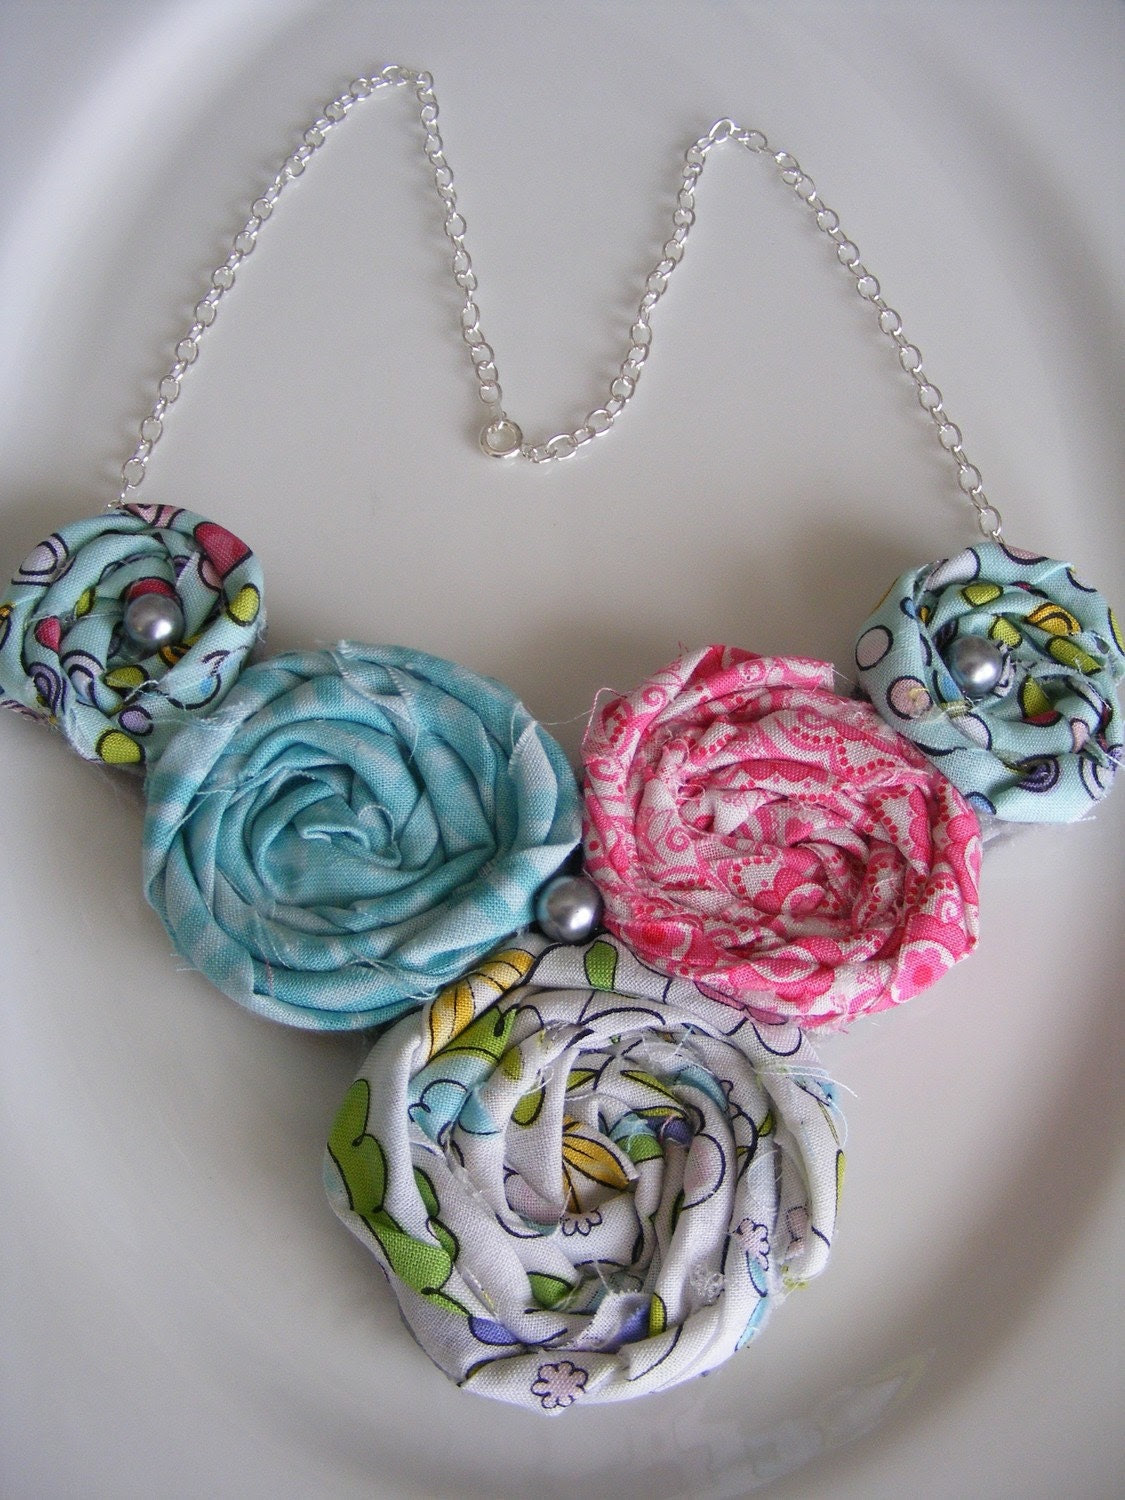 Pink & Turqoise Rosette Necklace